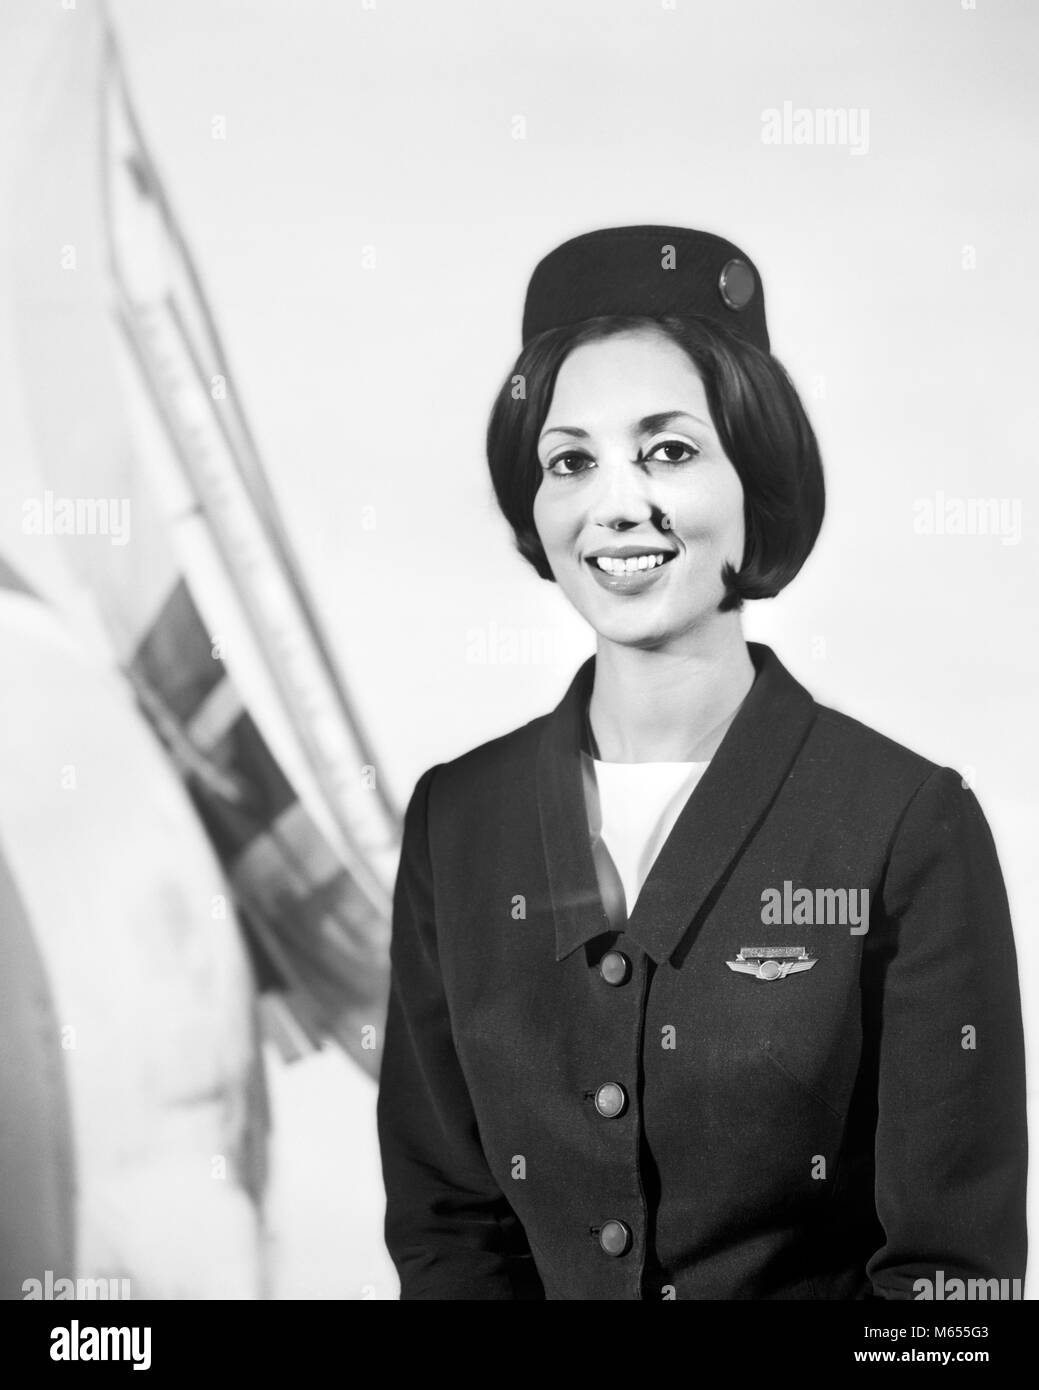 1960s SMILING FEMALE STEWARDESS FLIGHT ATTENDANT LOOKING AT CAMERA - a7414 HAR001 HARS FEMALES JOBS FLIGHT ONE PERSON - Stock Image